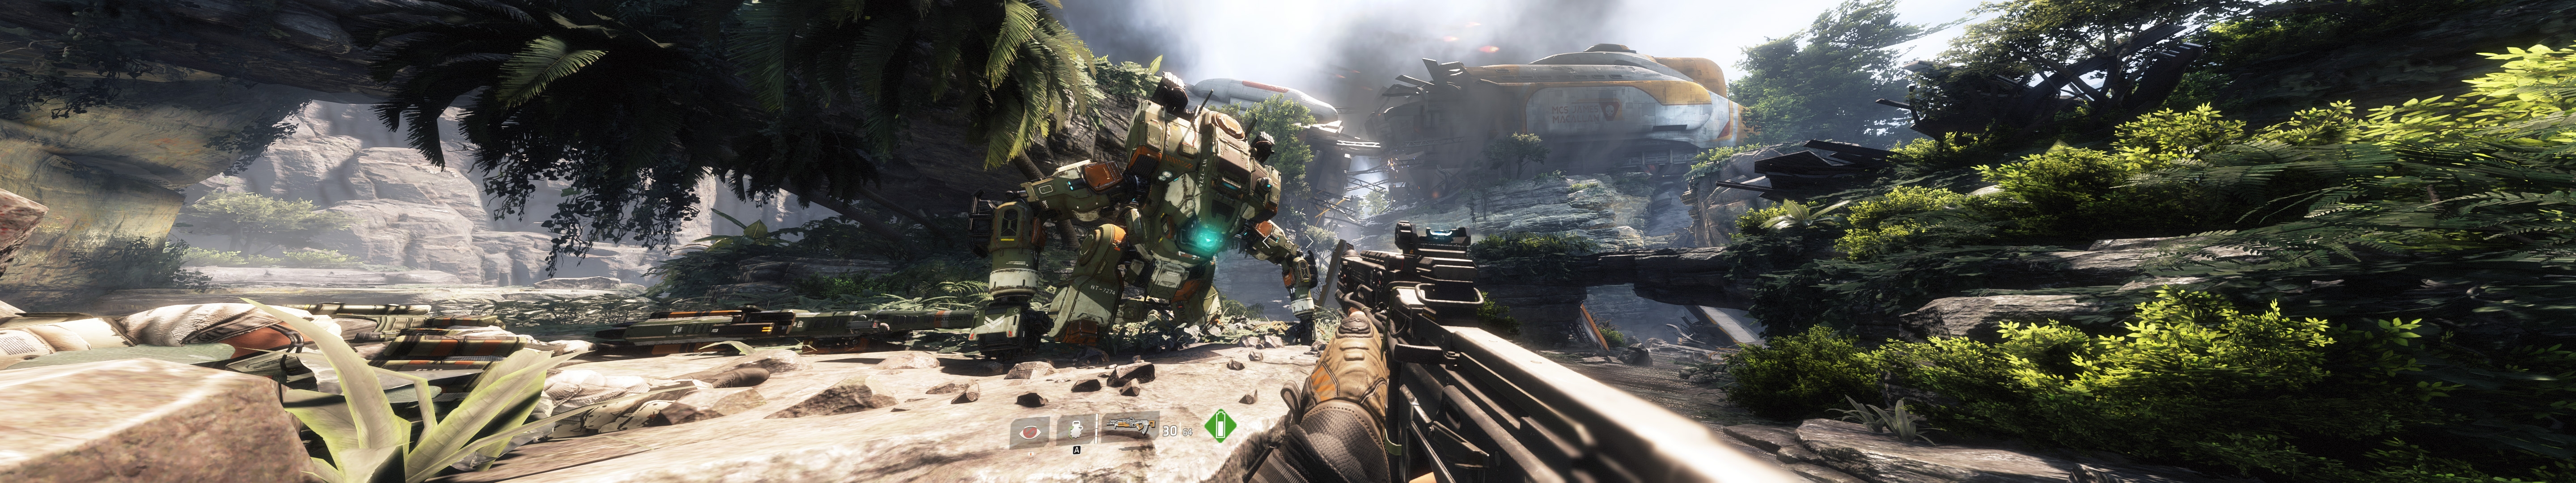 Triple screen - surround nvidia - Issues — Titanfall 2 Forums